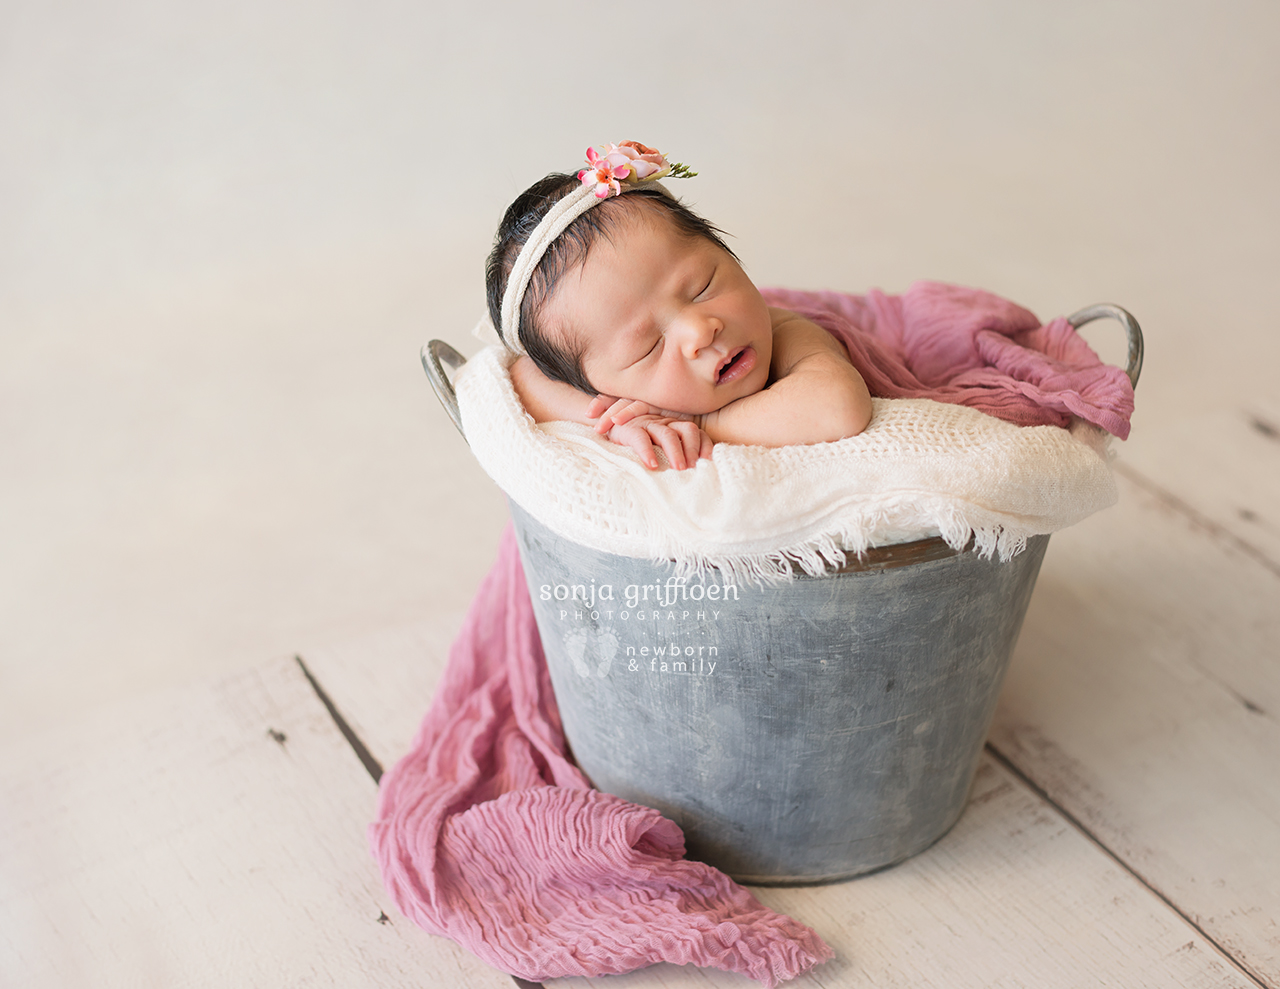 Harriet-Newborn-Brisbane-Newborn-Photographer-Sonja-Griffioen-03.jpg